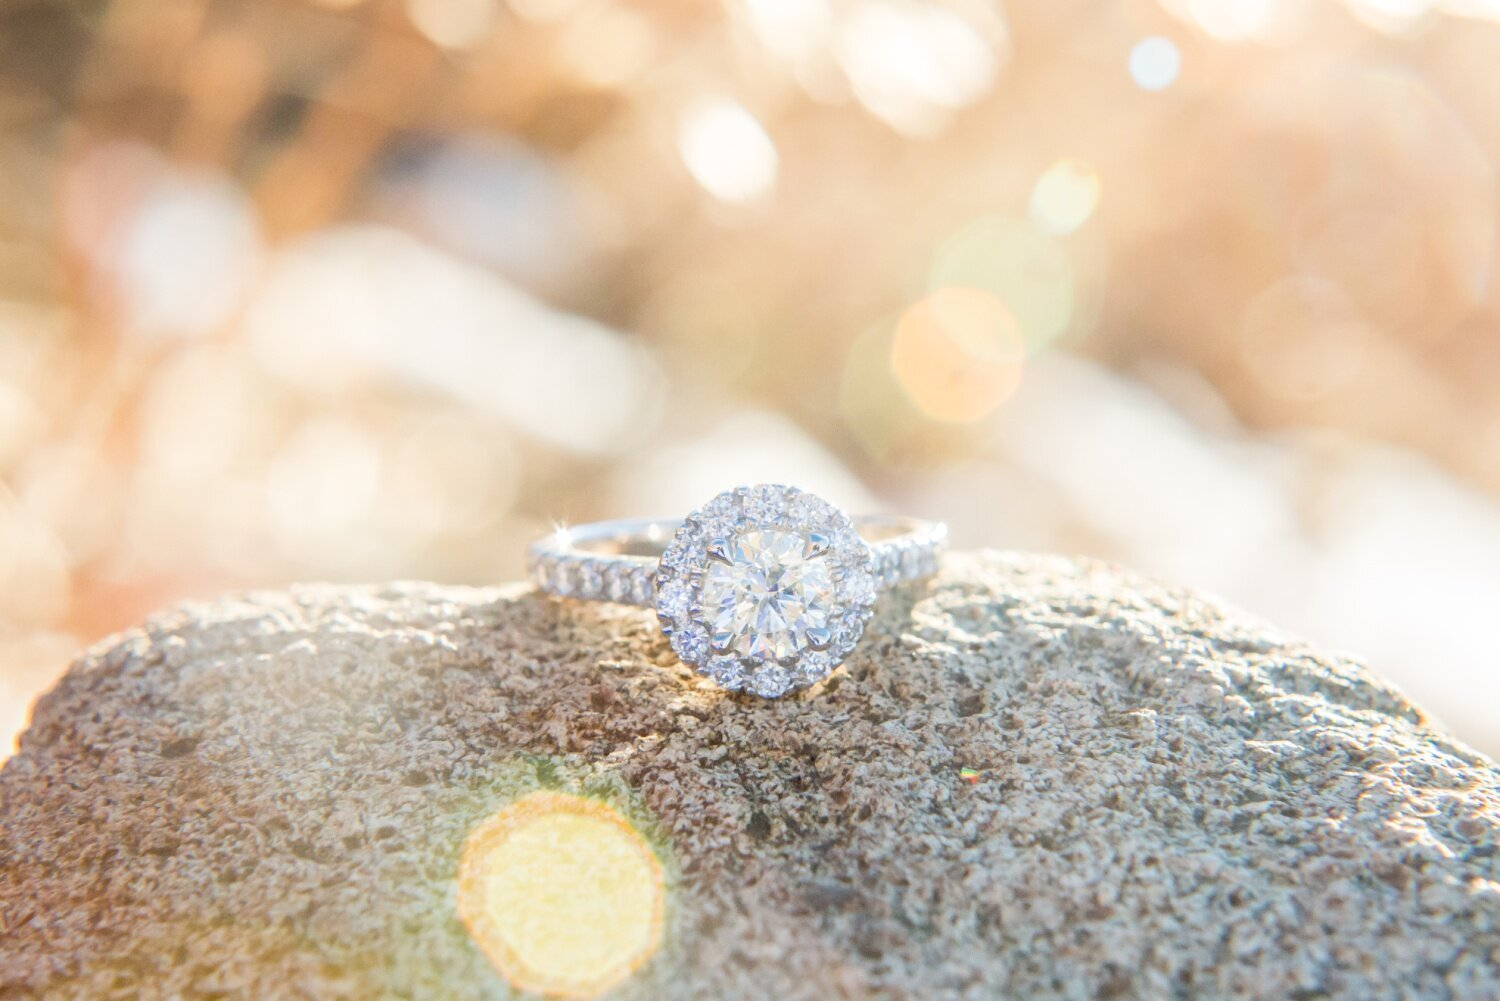 Proposal photography in Colorado at Snowmass